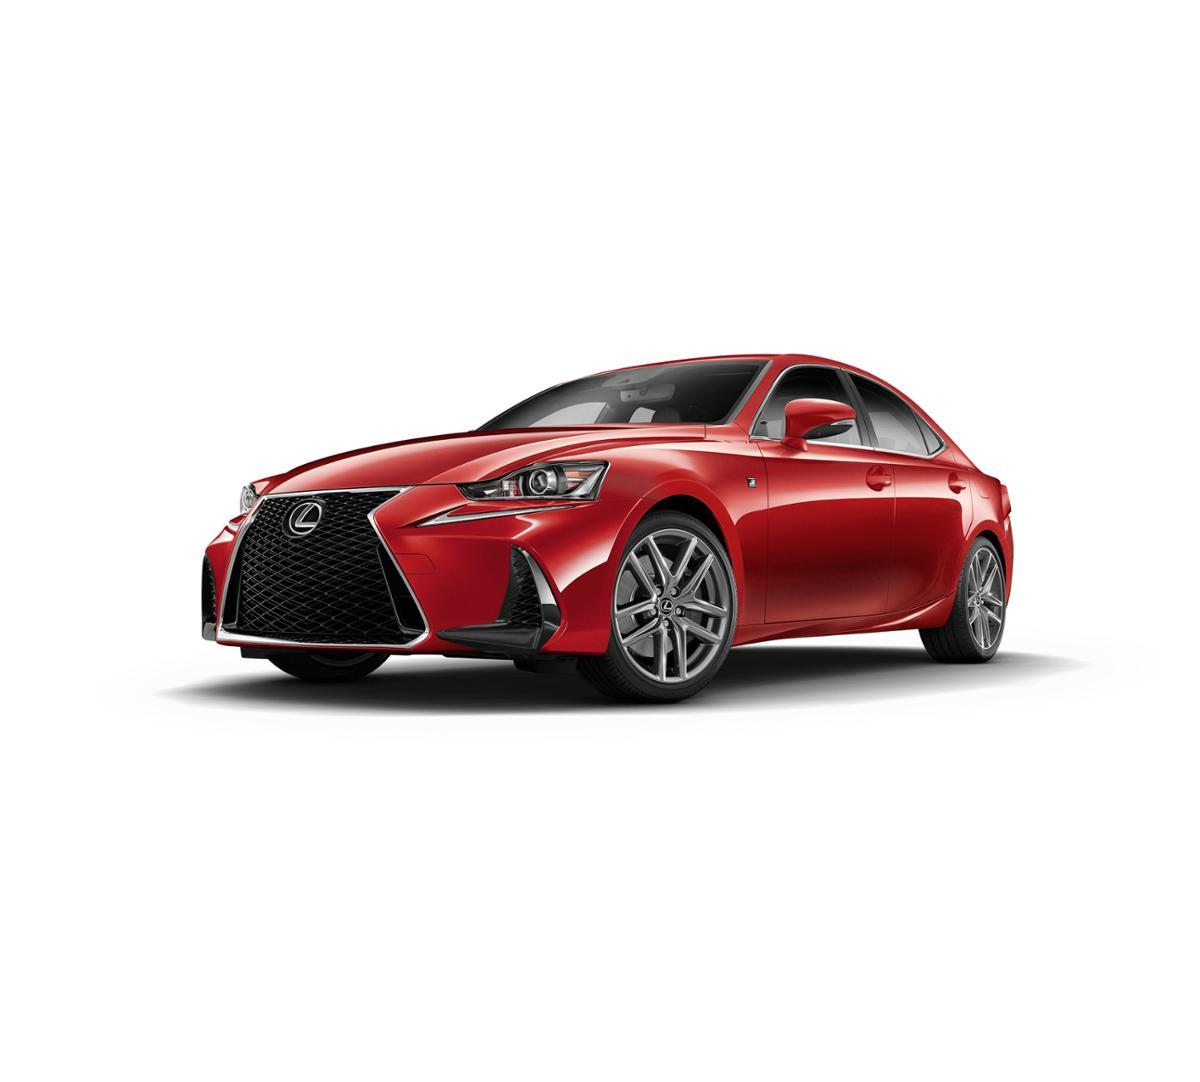 2017 Lexus IS Turbo Vehicle Photo in Santa Monica, CA 90404